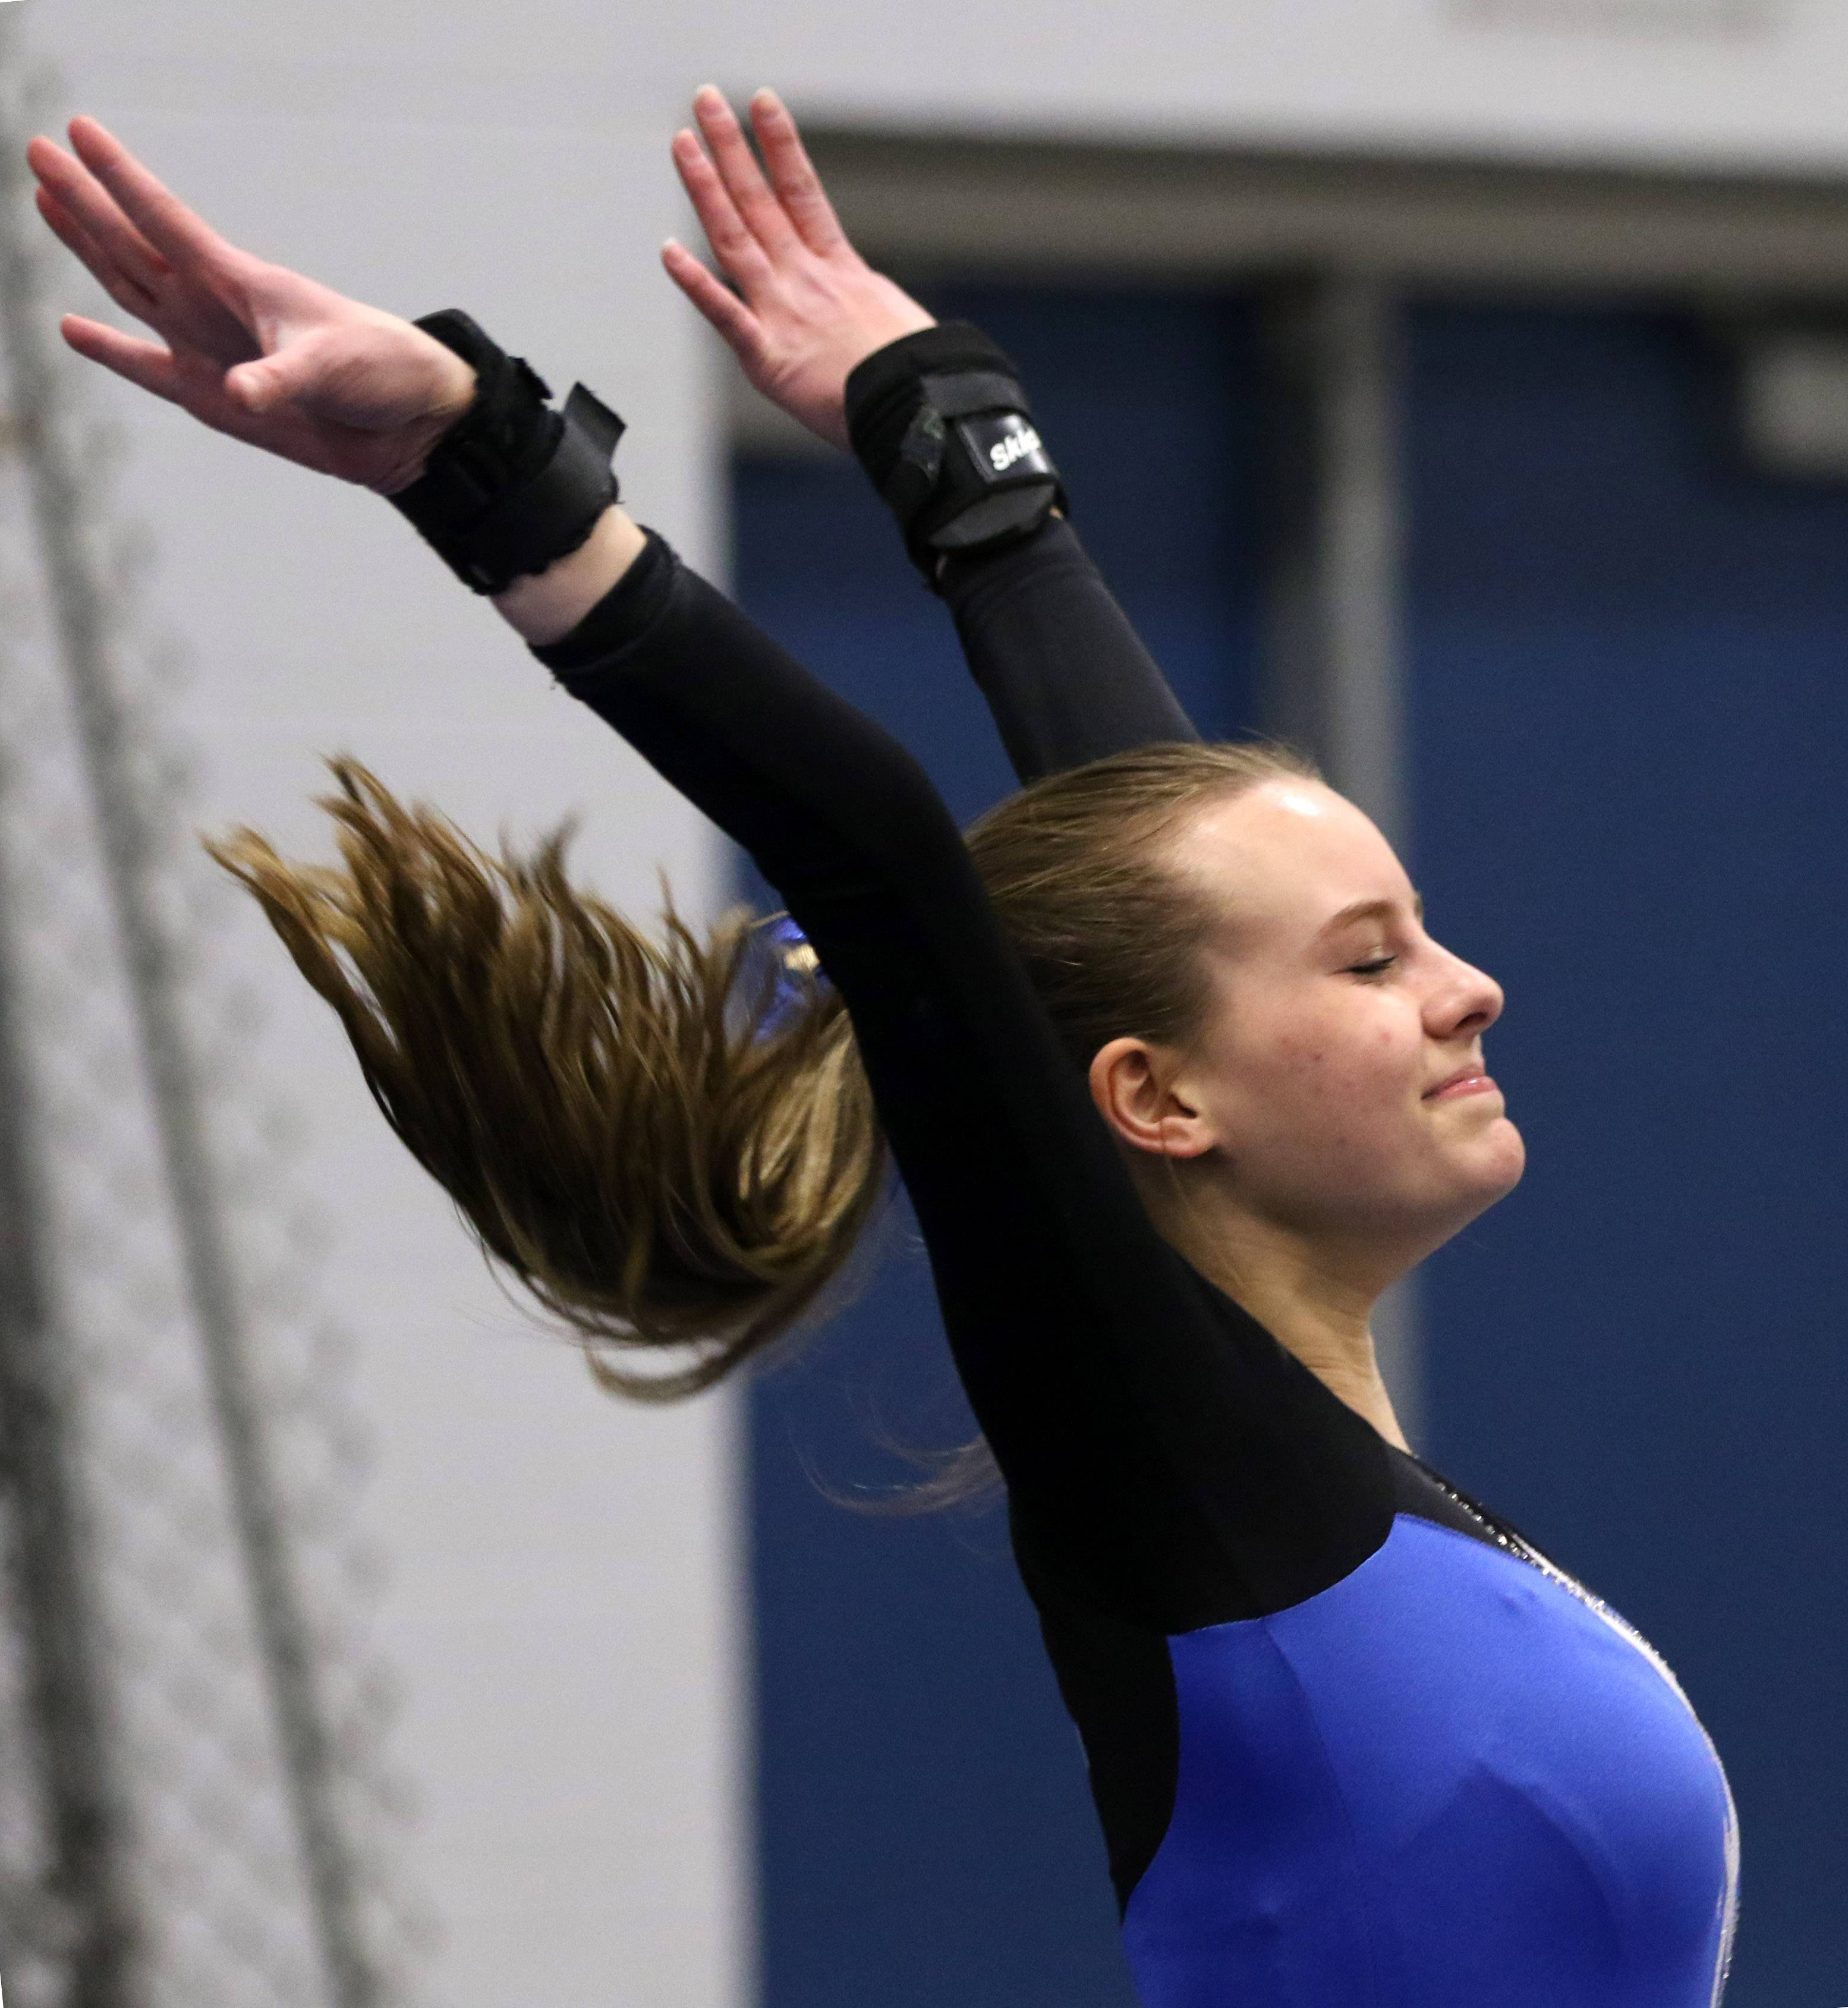 Wheeling's Jessica Stavros completes her vault during regional gymnastics action at Wheeling on Monday evening.